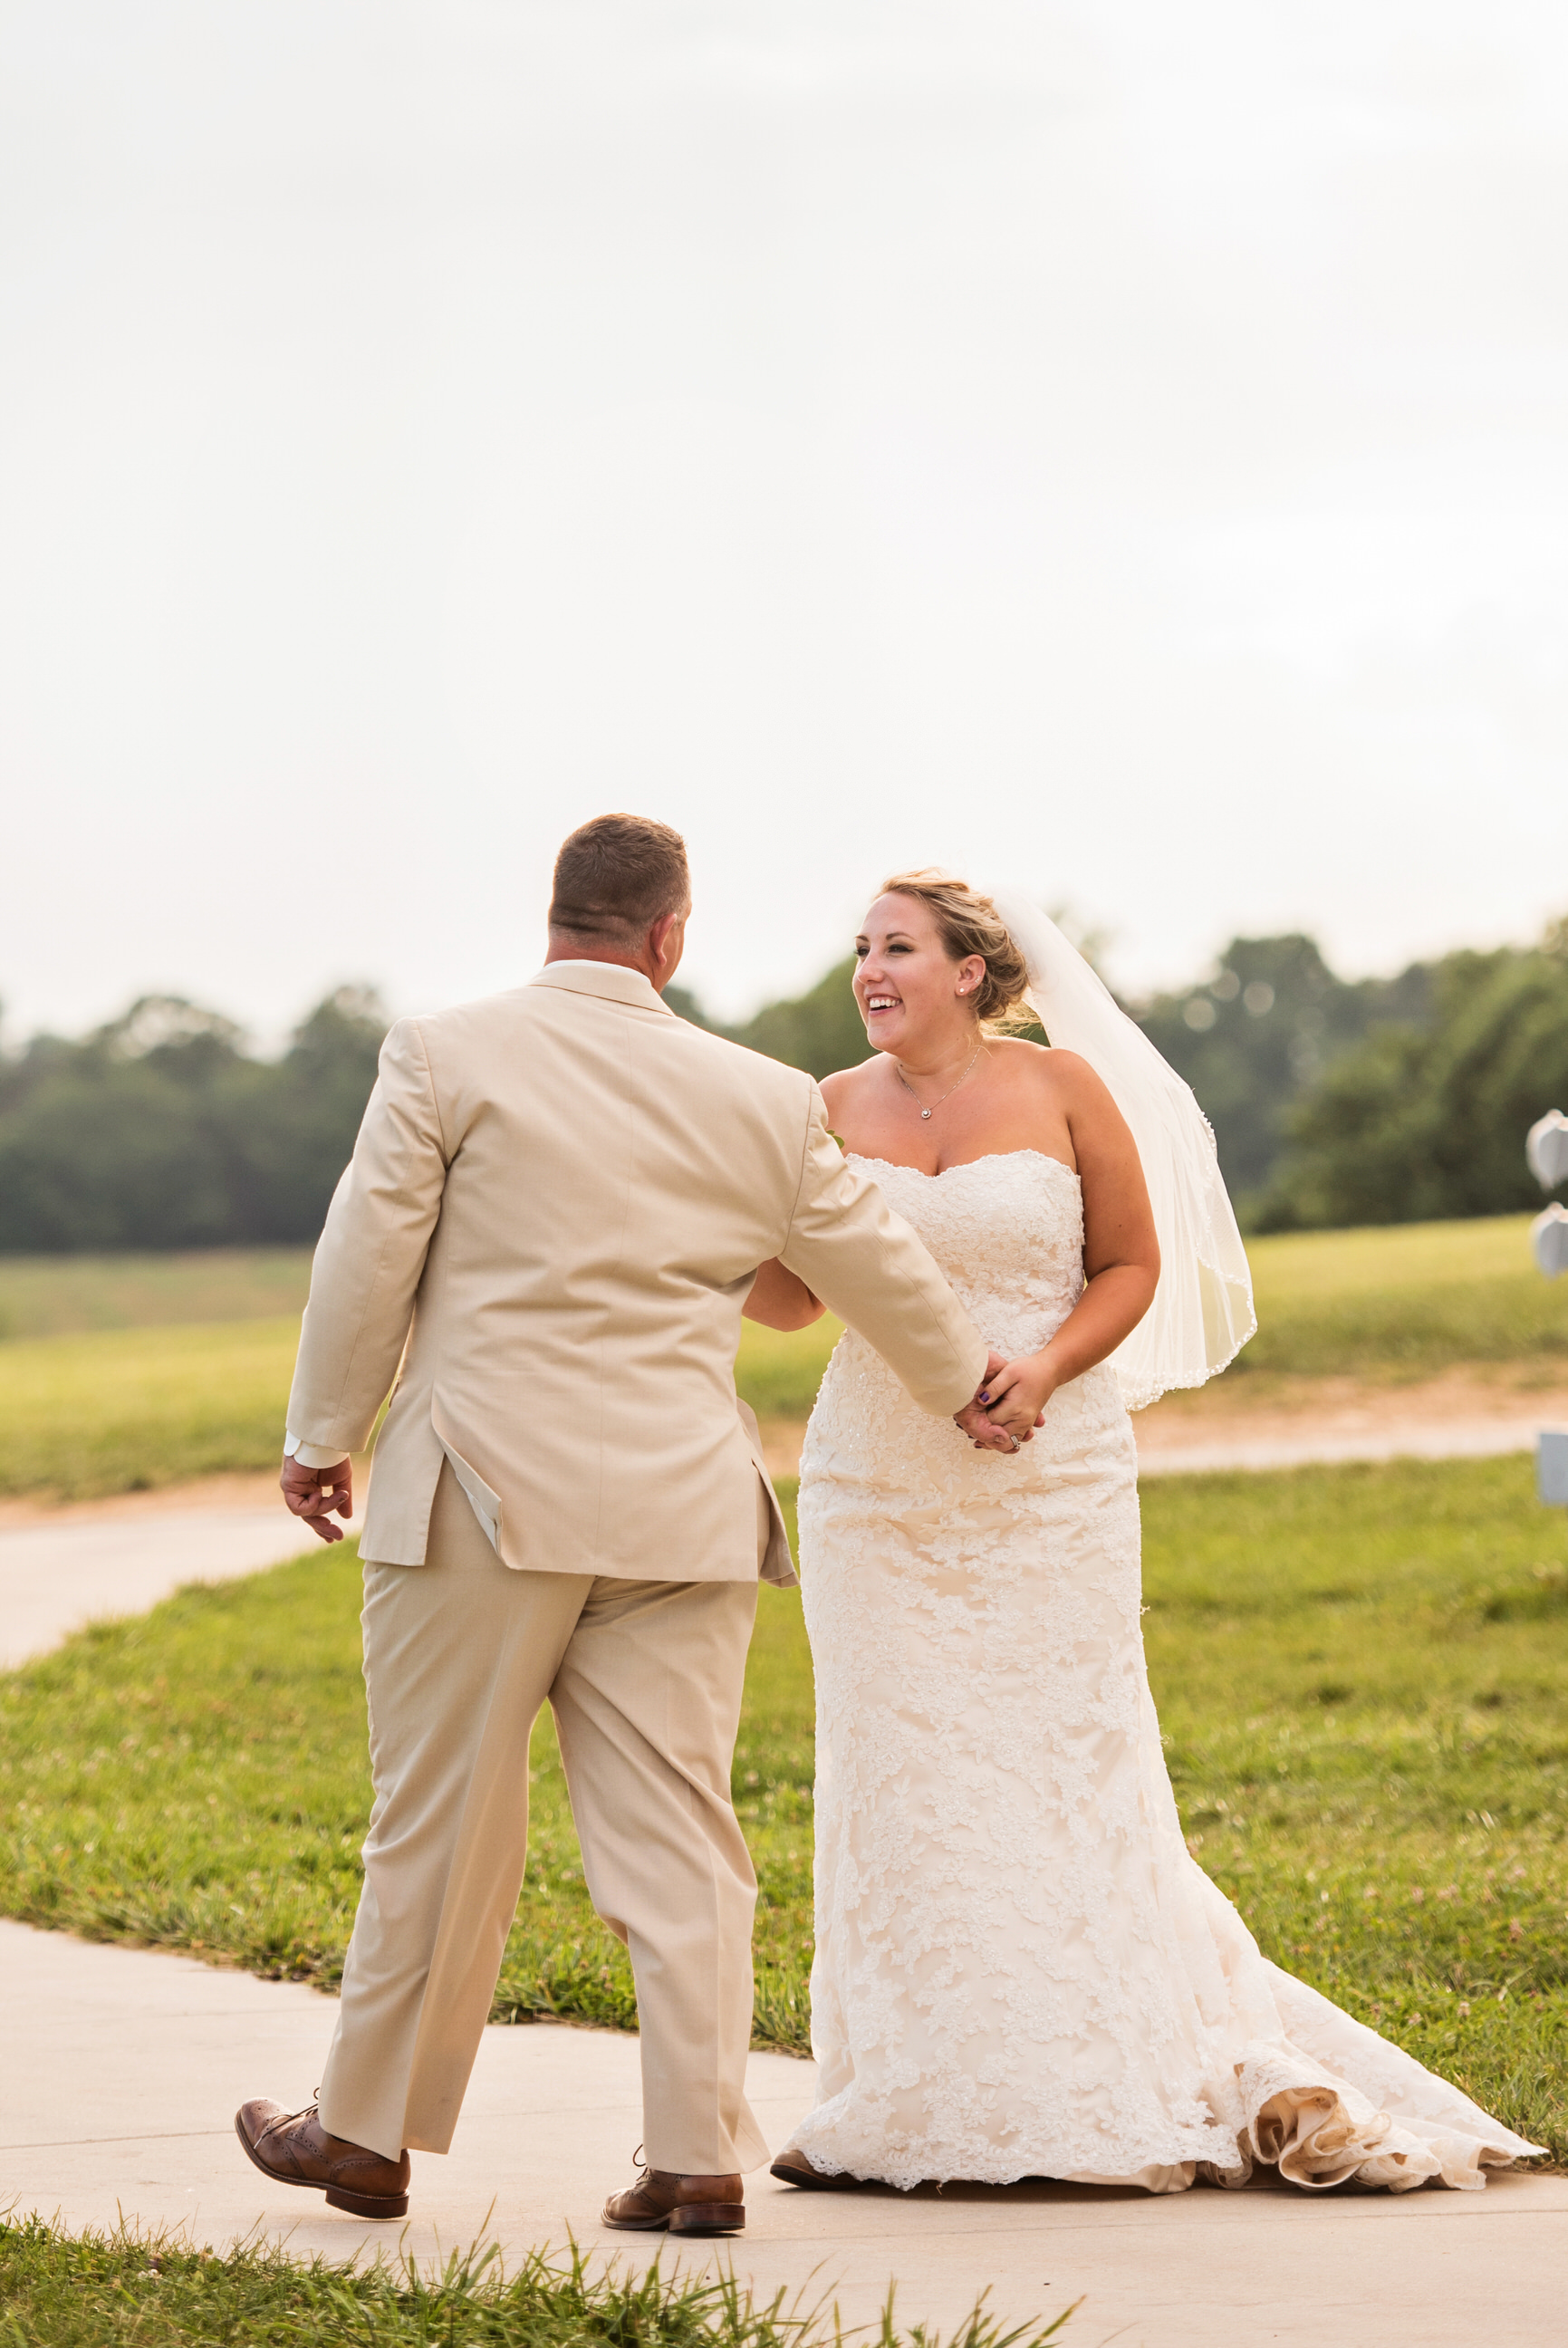 LiganoreWineryWedding-Amber&Andy-WeddingParty-4.jpg